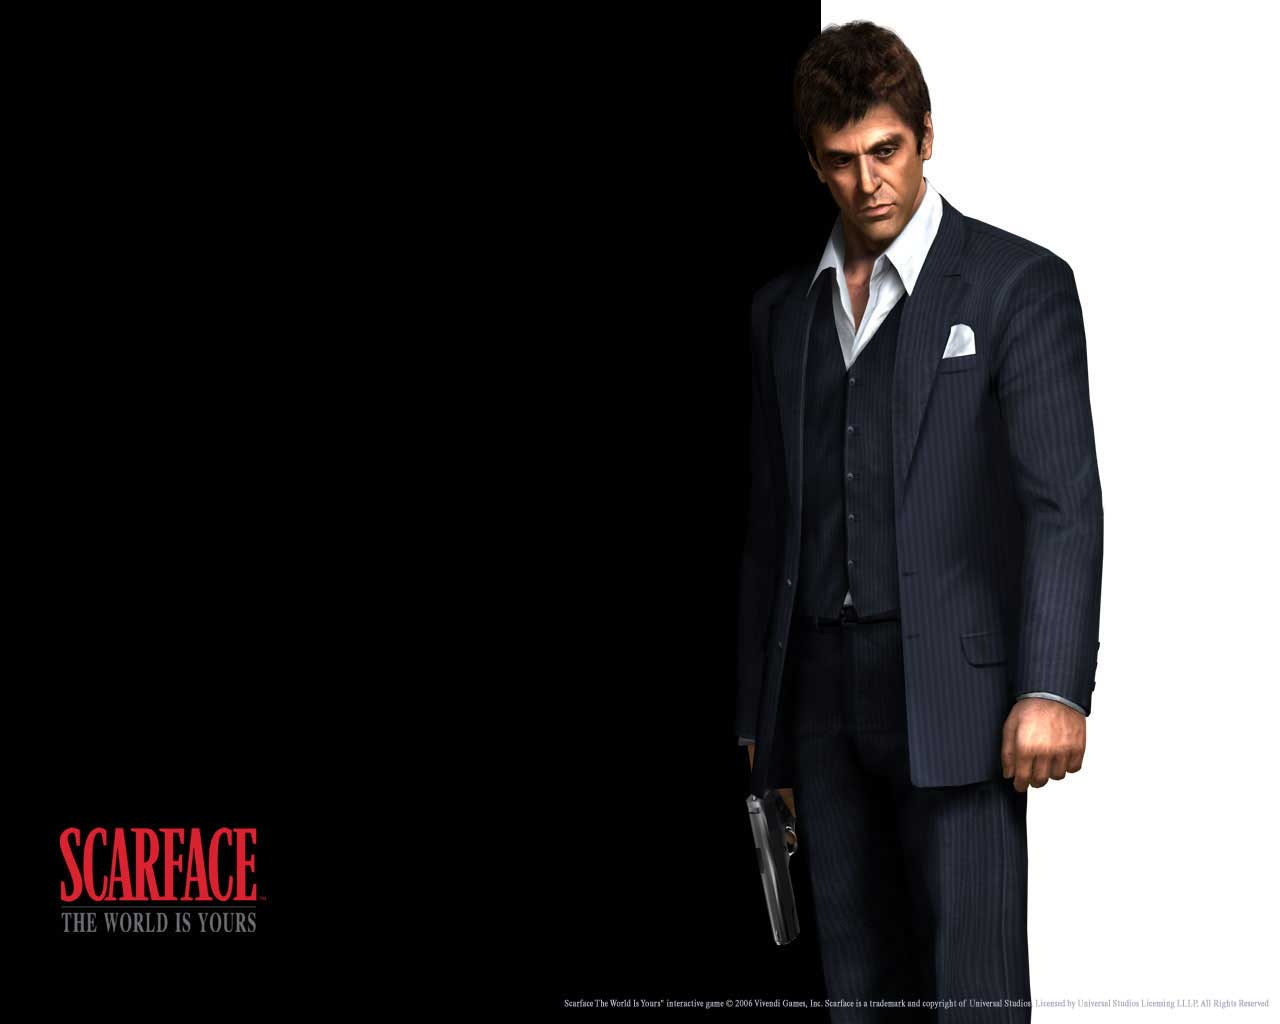 Scarface Wallpapers Wallpapers of Scarface Movie 1280x1024